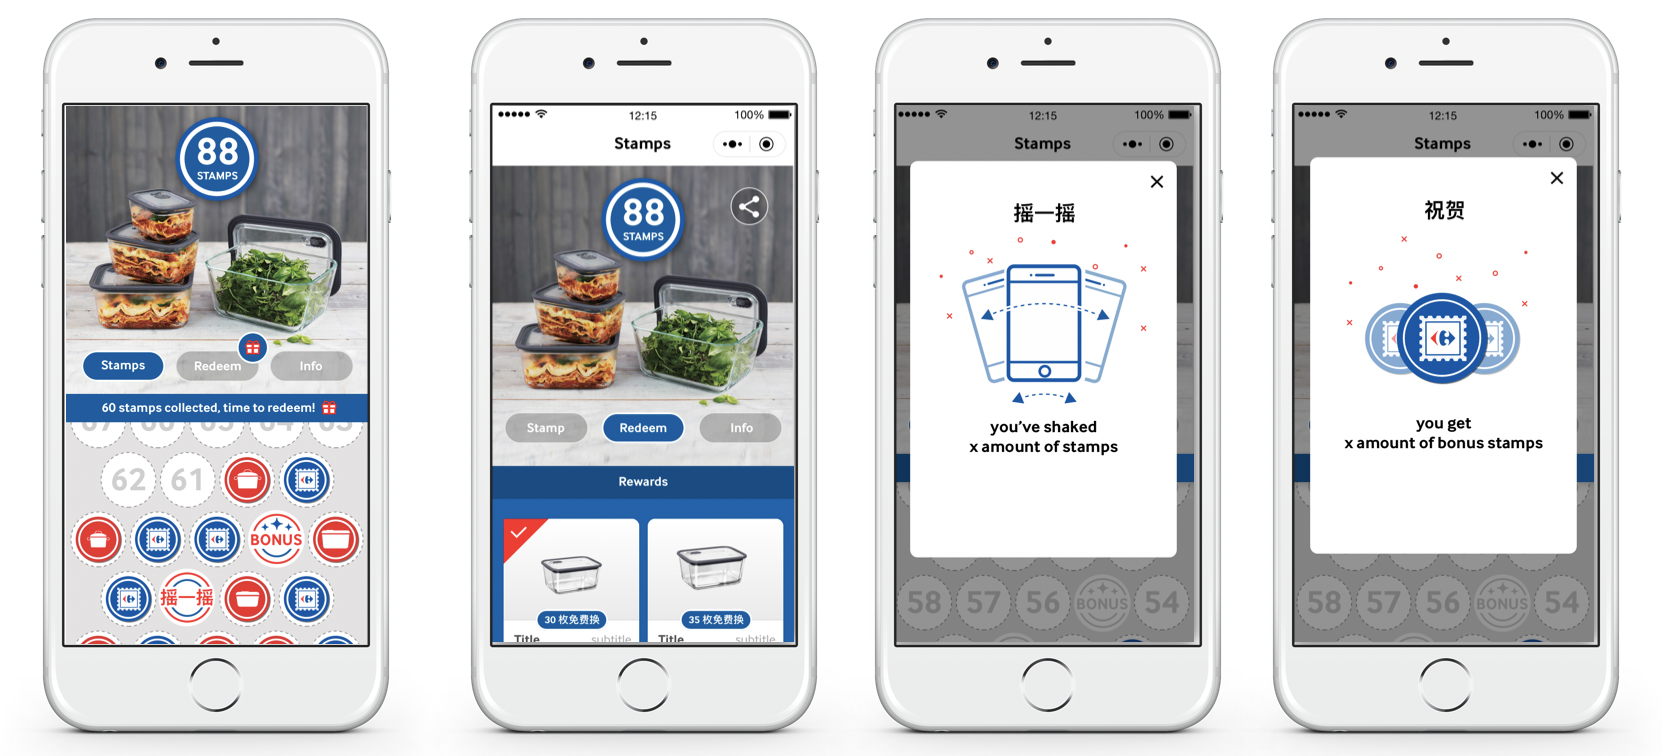 Carrefour China - a leading multinational corporation specialized in retail - launched a WeChat-only program, allowing customers to collect stamps for rewards from Jamie Oliver's line of kitchen essentials.